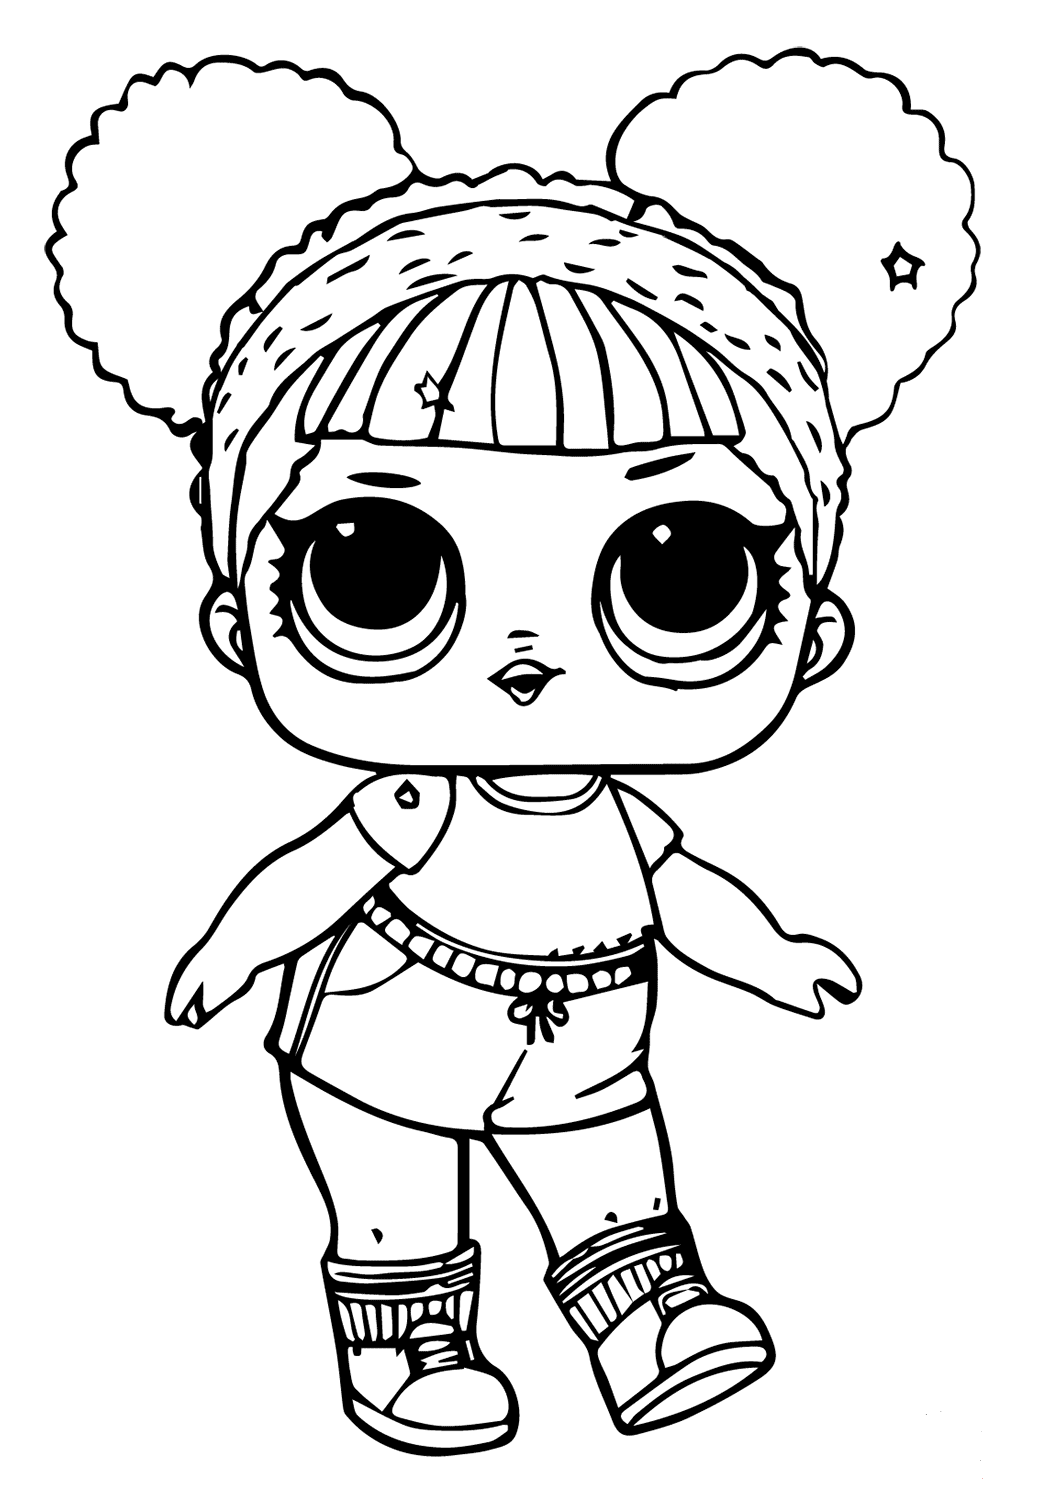 30 Free Printable Lol Surprise Doll Coloring Pages - Coloring Junction